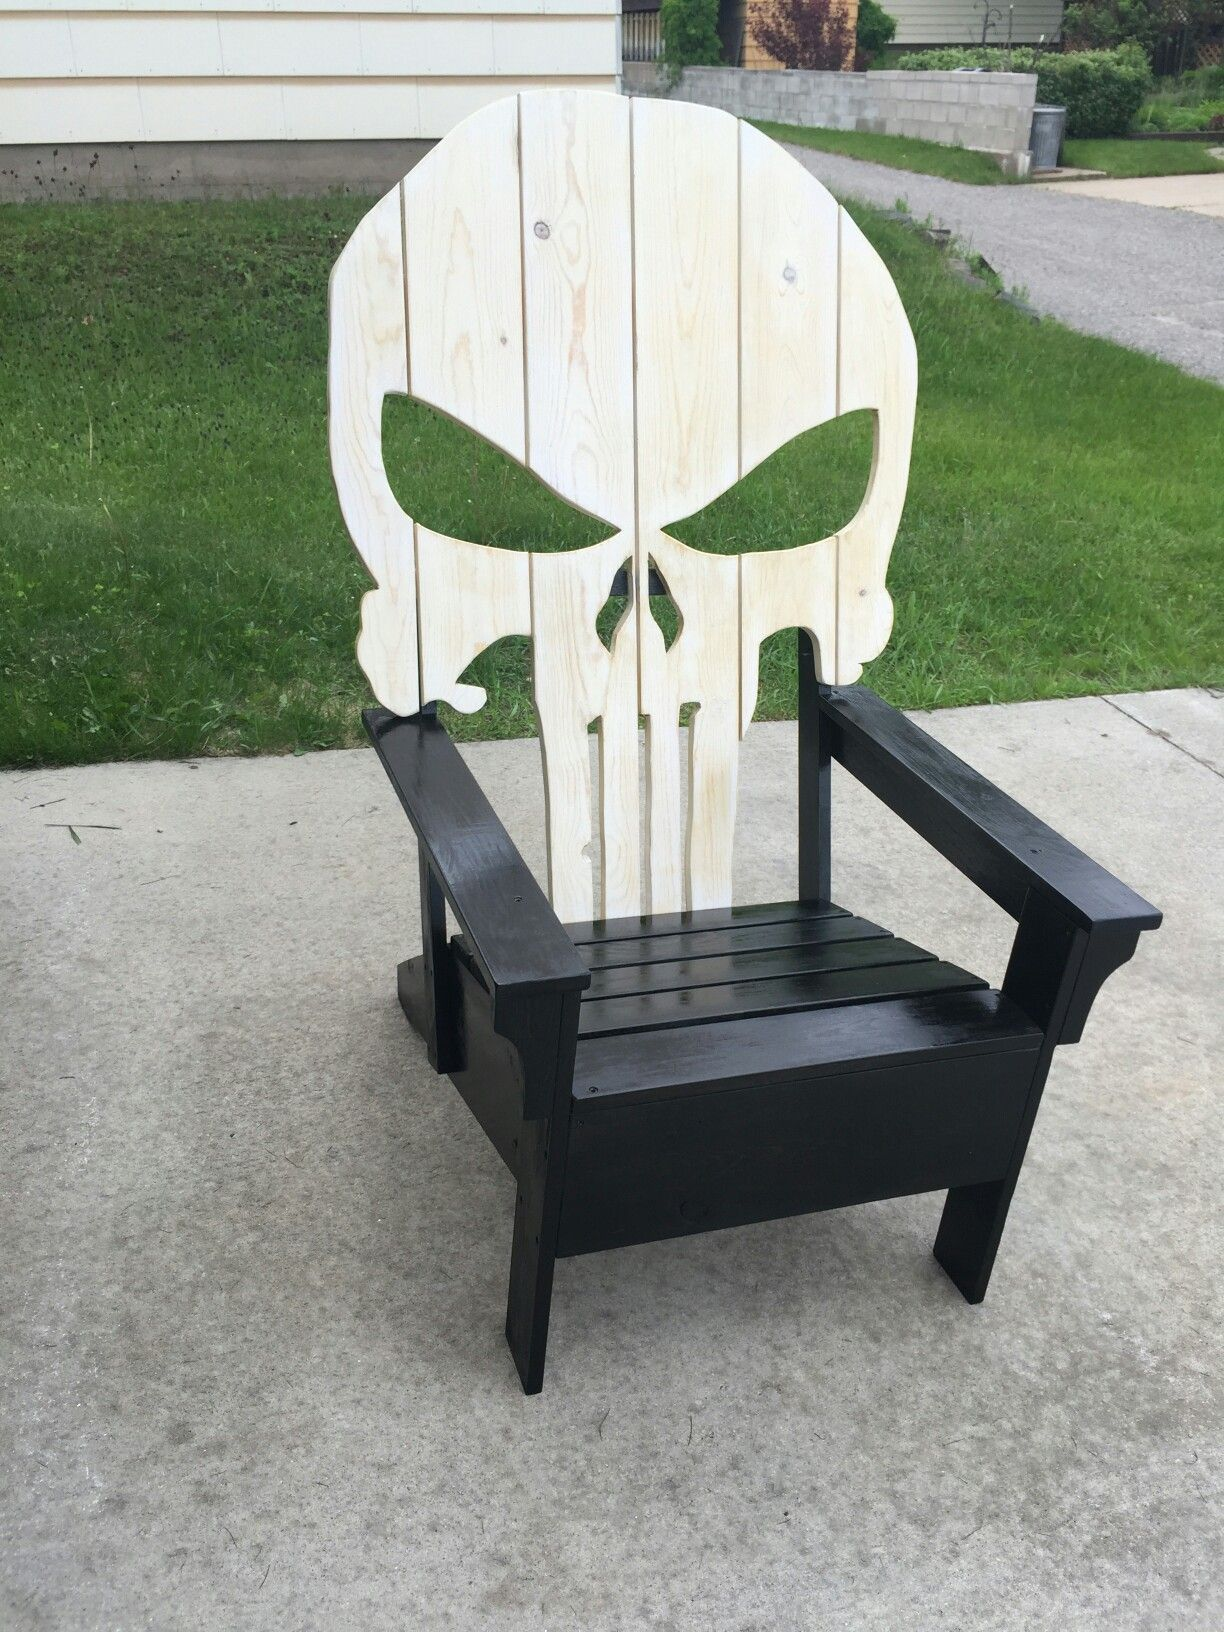 Punisher Chair Garage Projects And Diy In 2019 Muebles